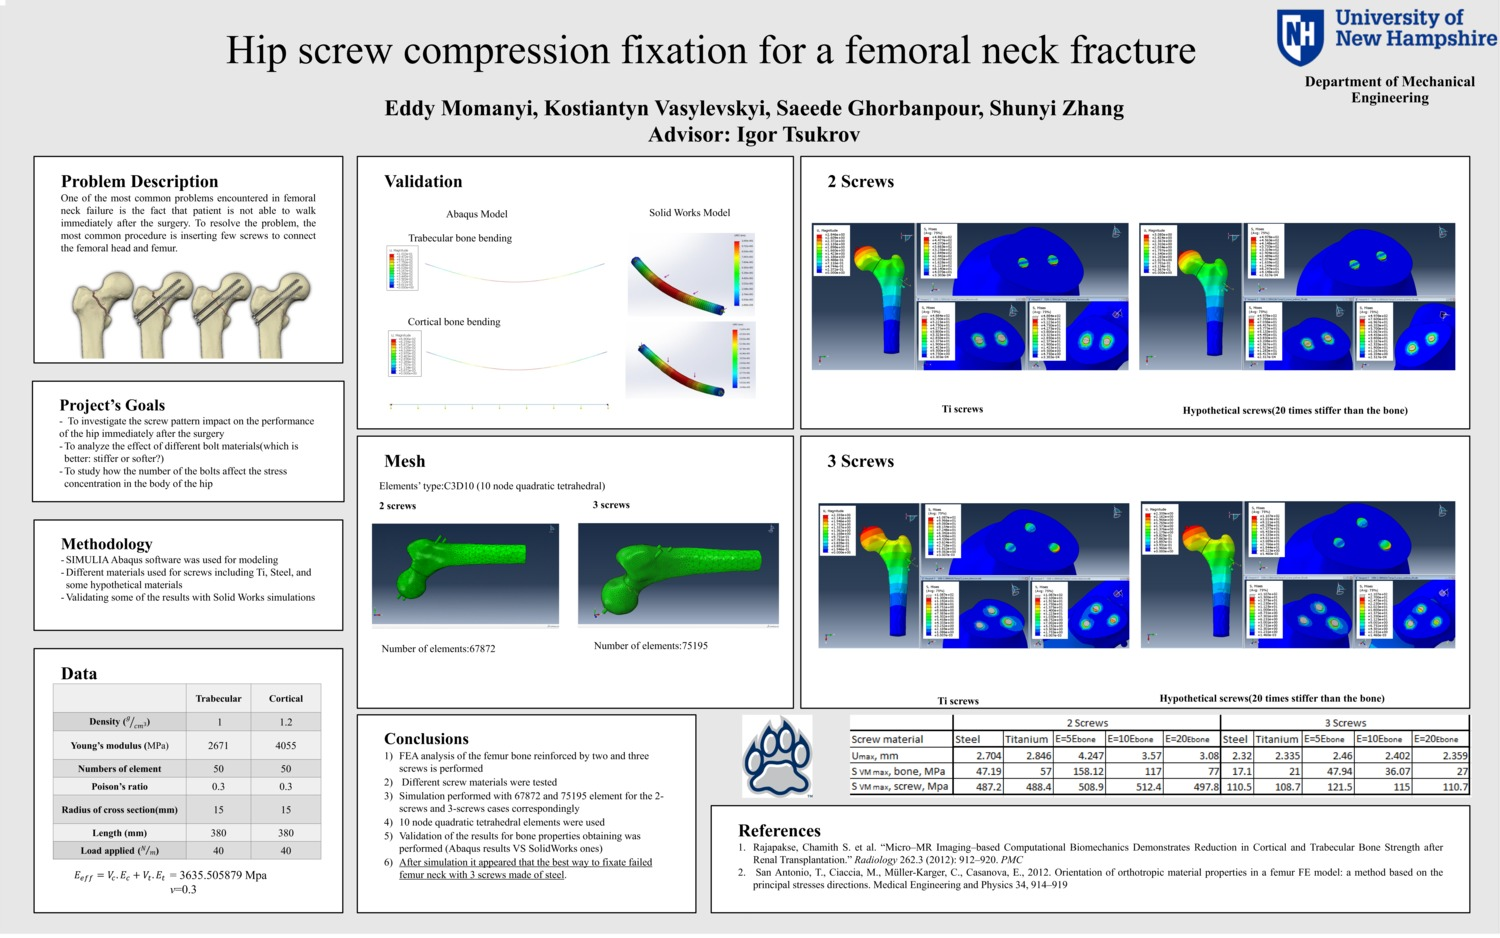 Hip Screw Compression Fixation For A Femoral Neck Fracture by kv1012